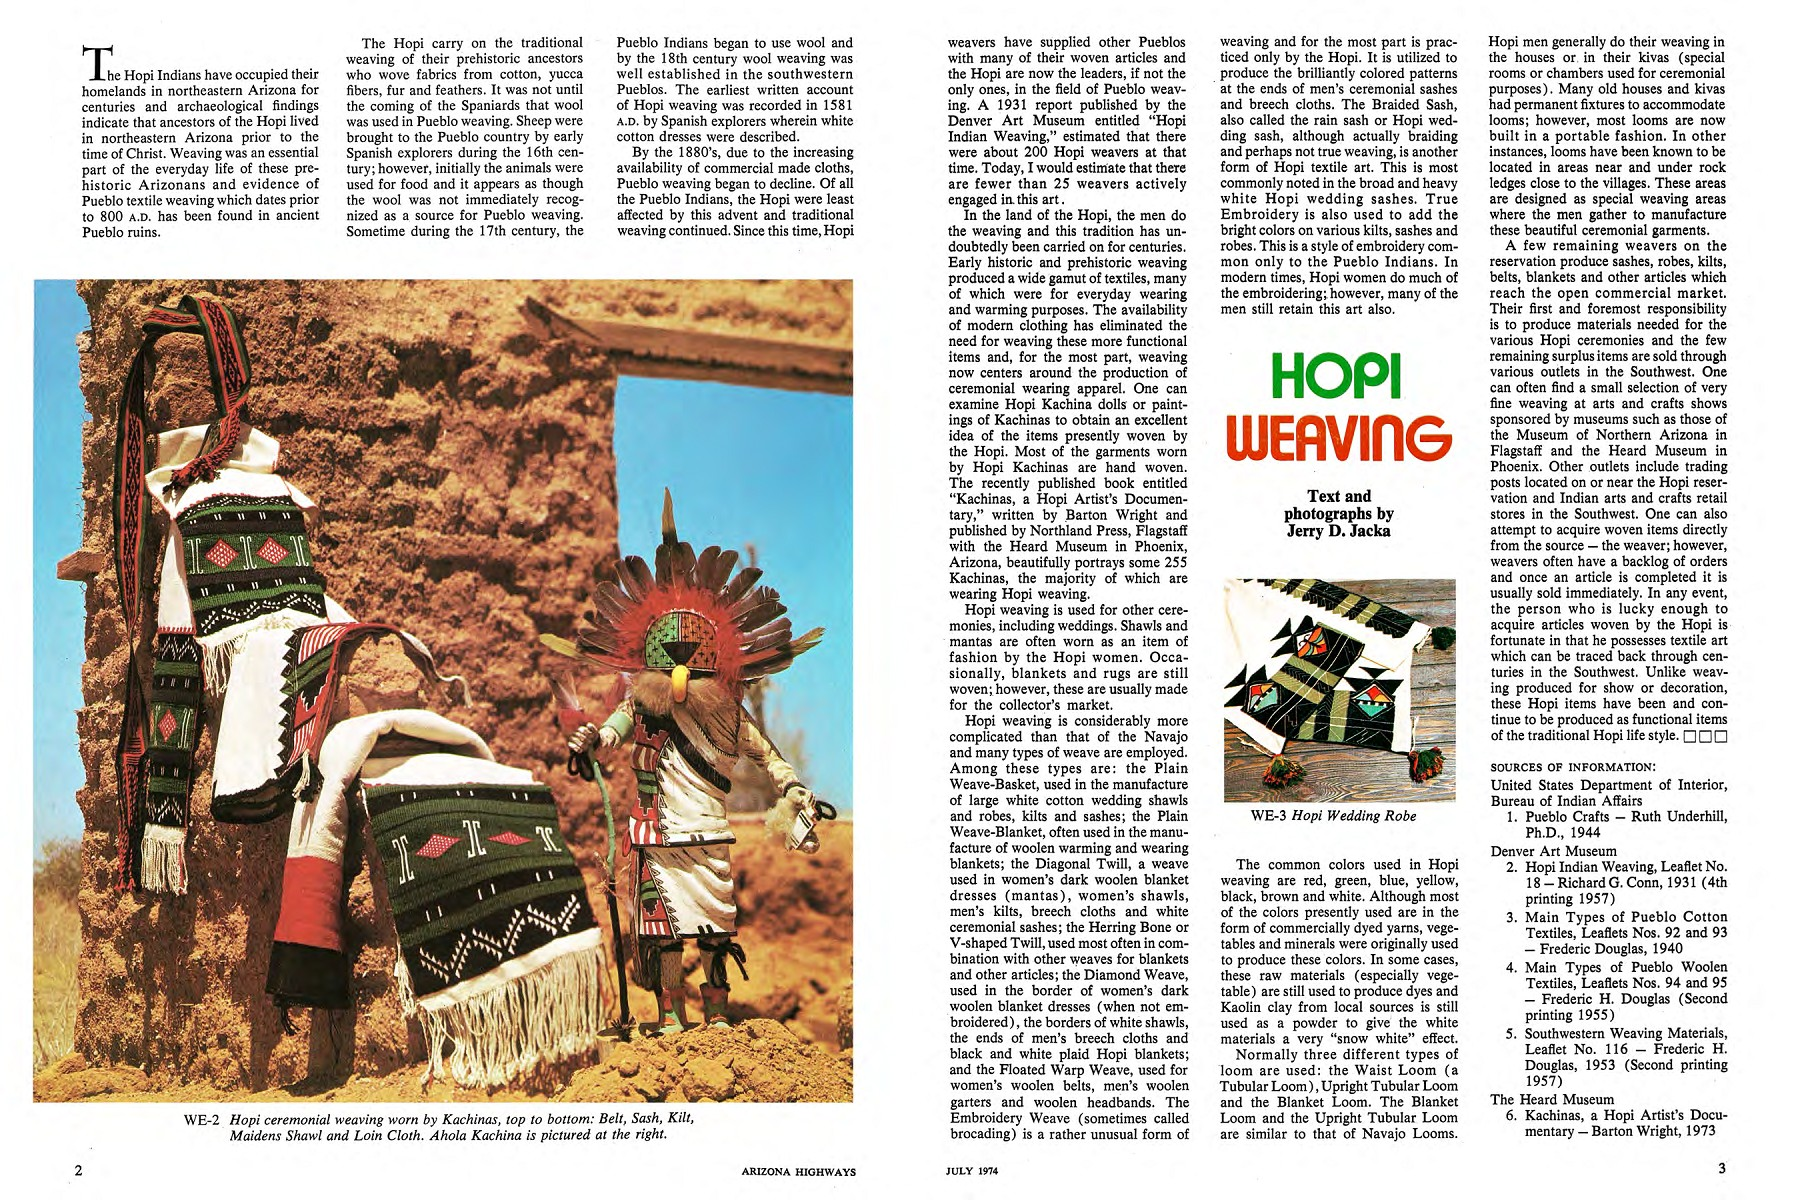 Arizona Highways 1974 Issue Pages 1 - 27 - Text Version | AnyFlip